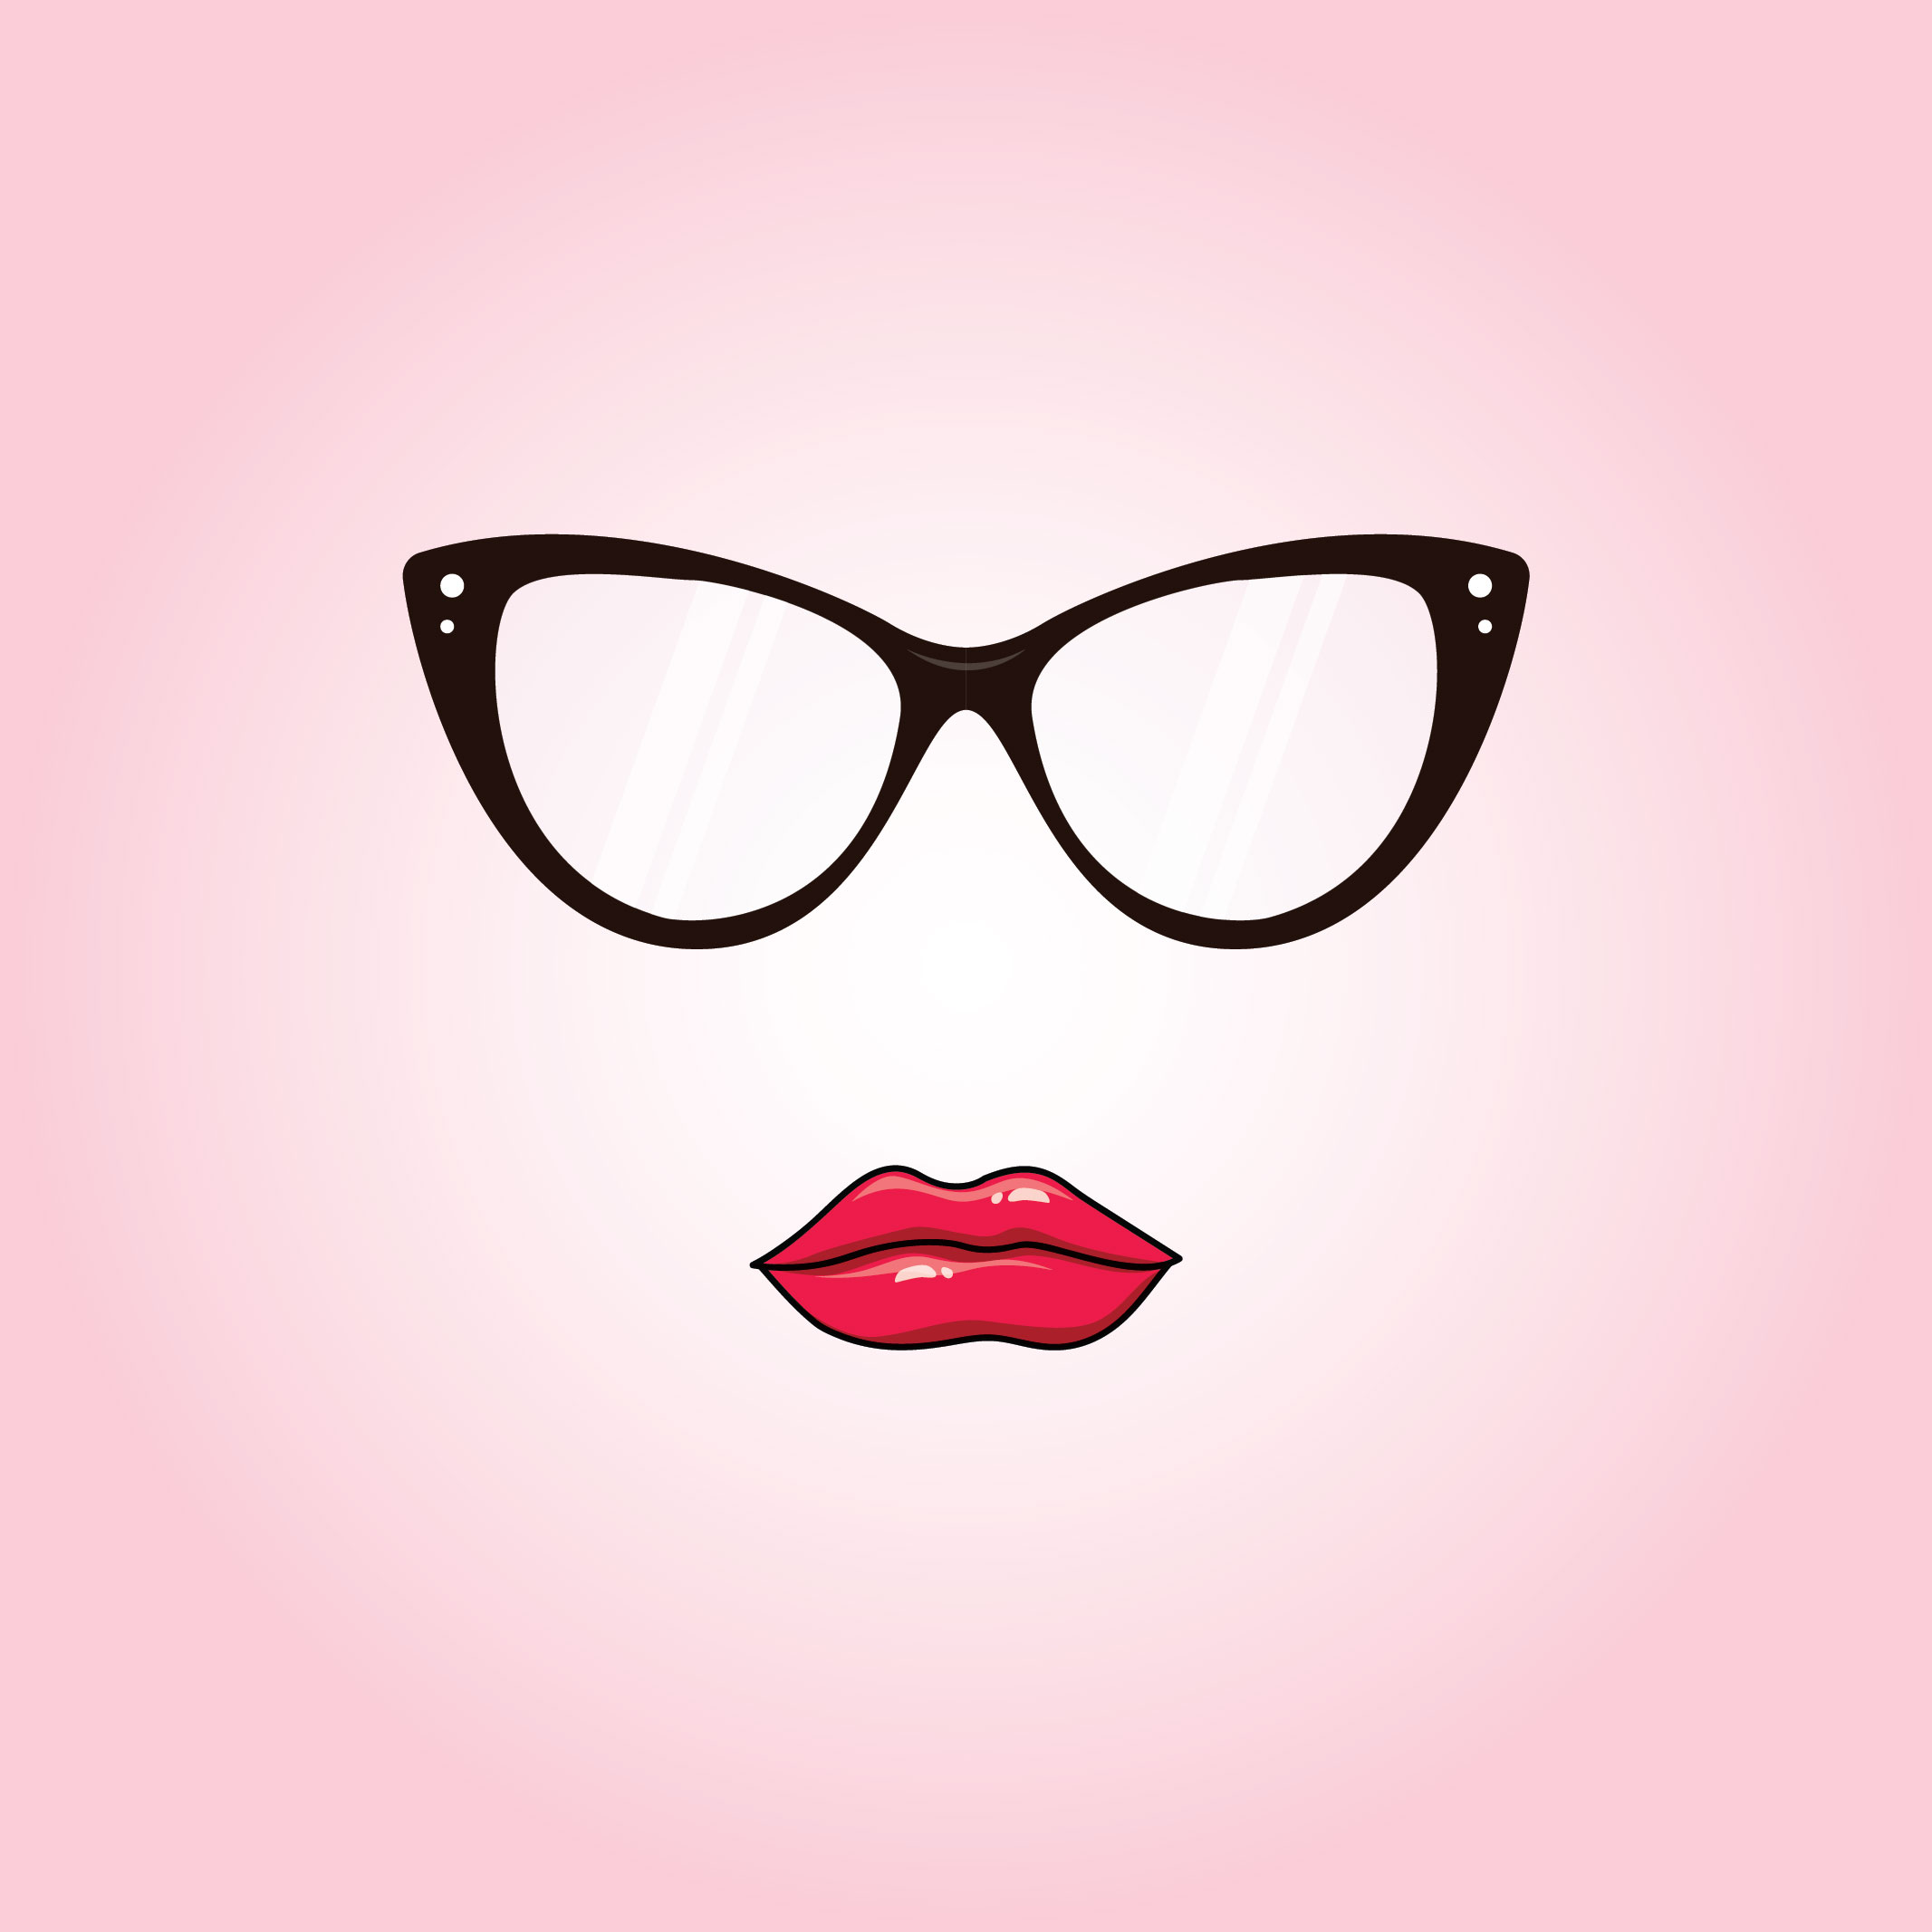 b215956dc482 The Latest Eyeglasses Style for Women